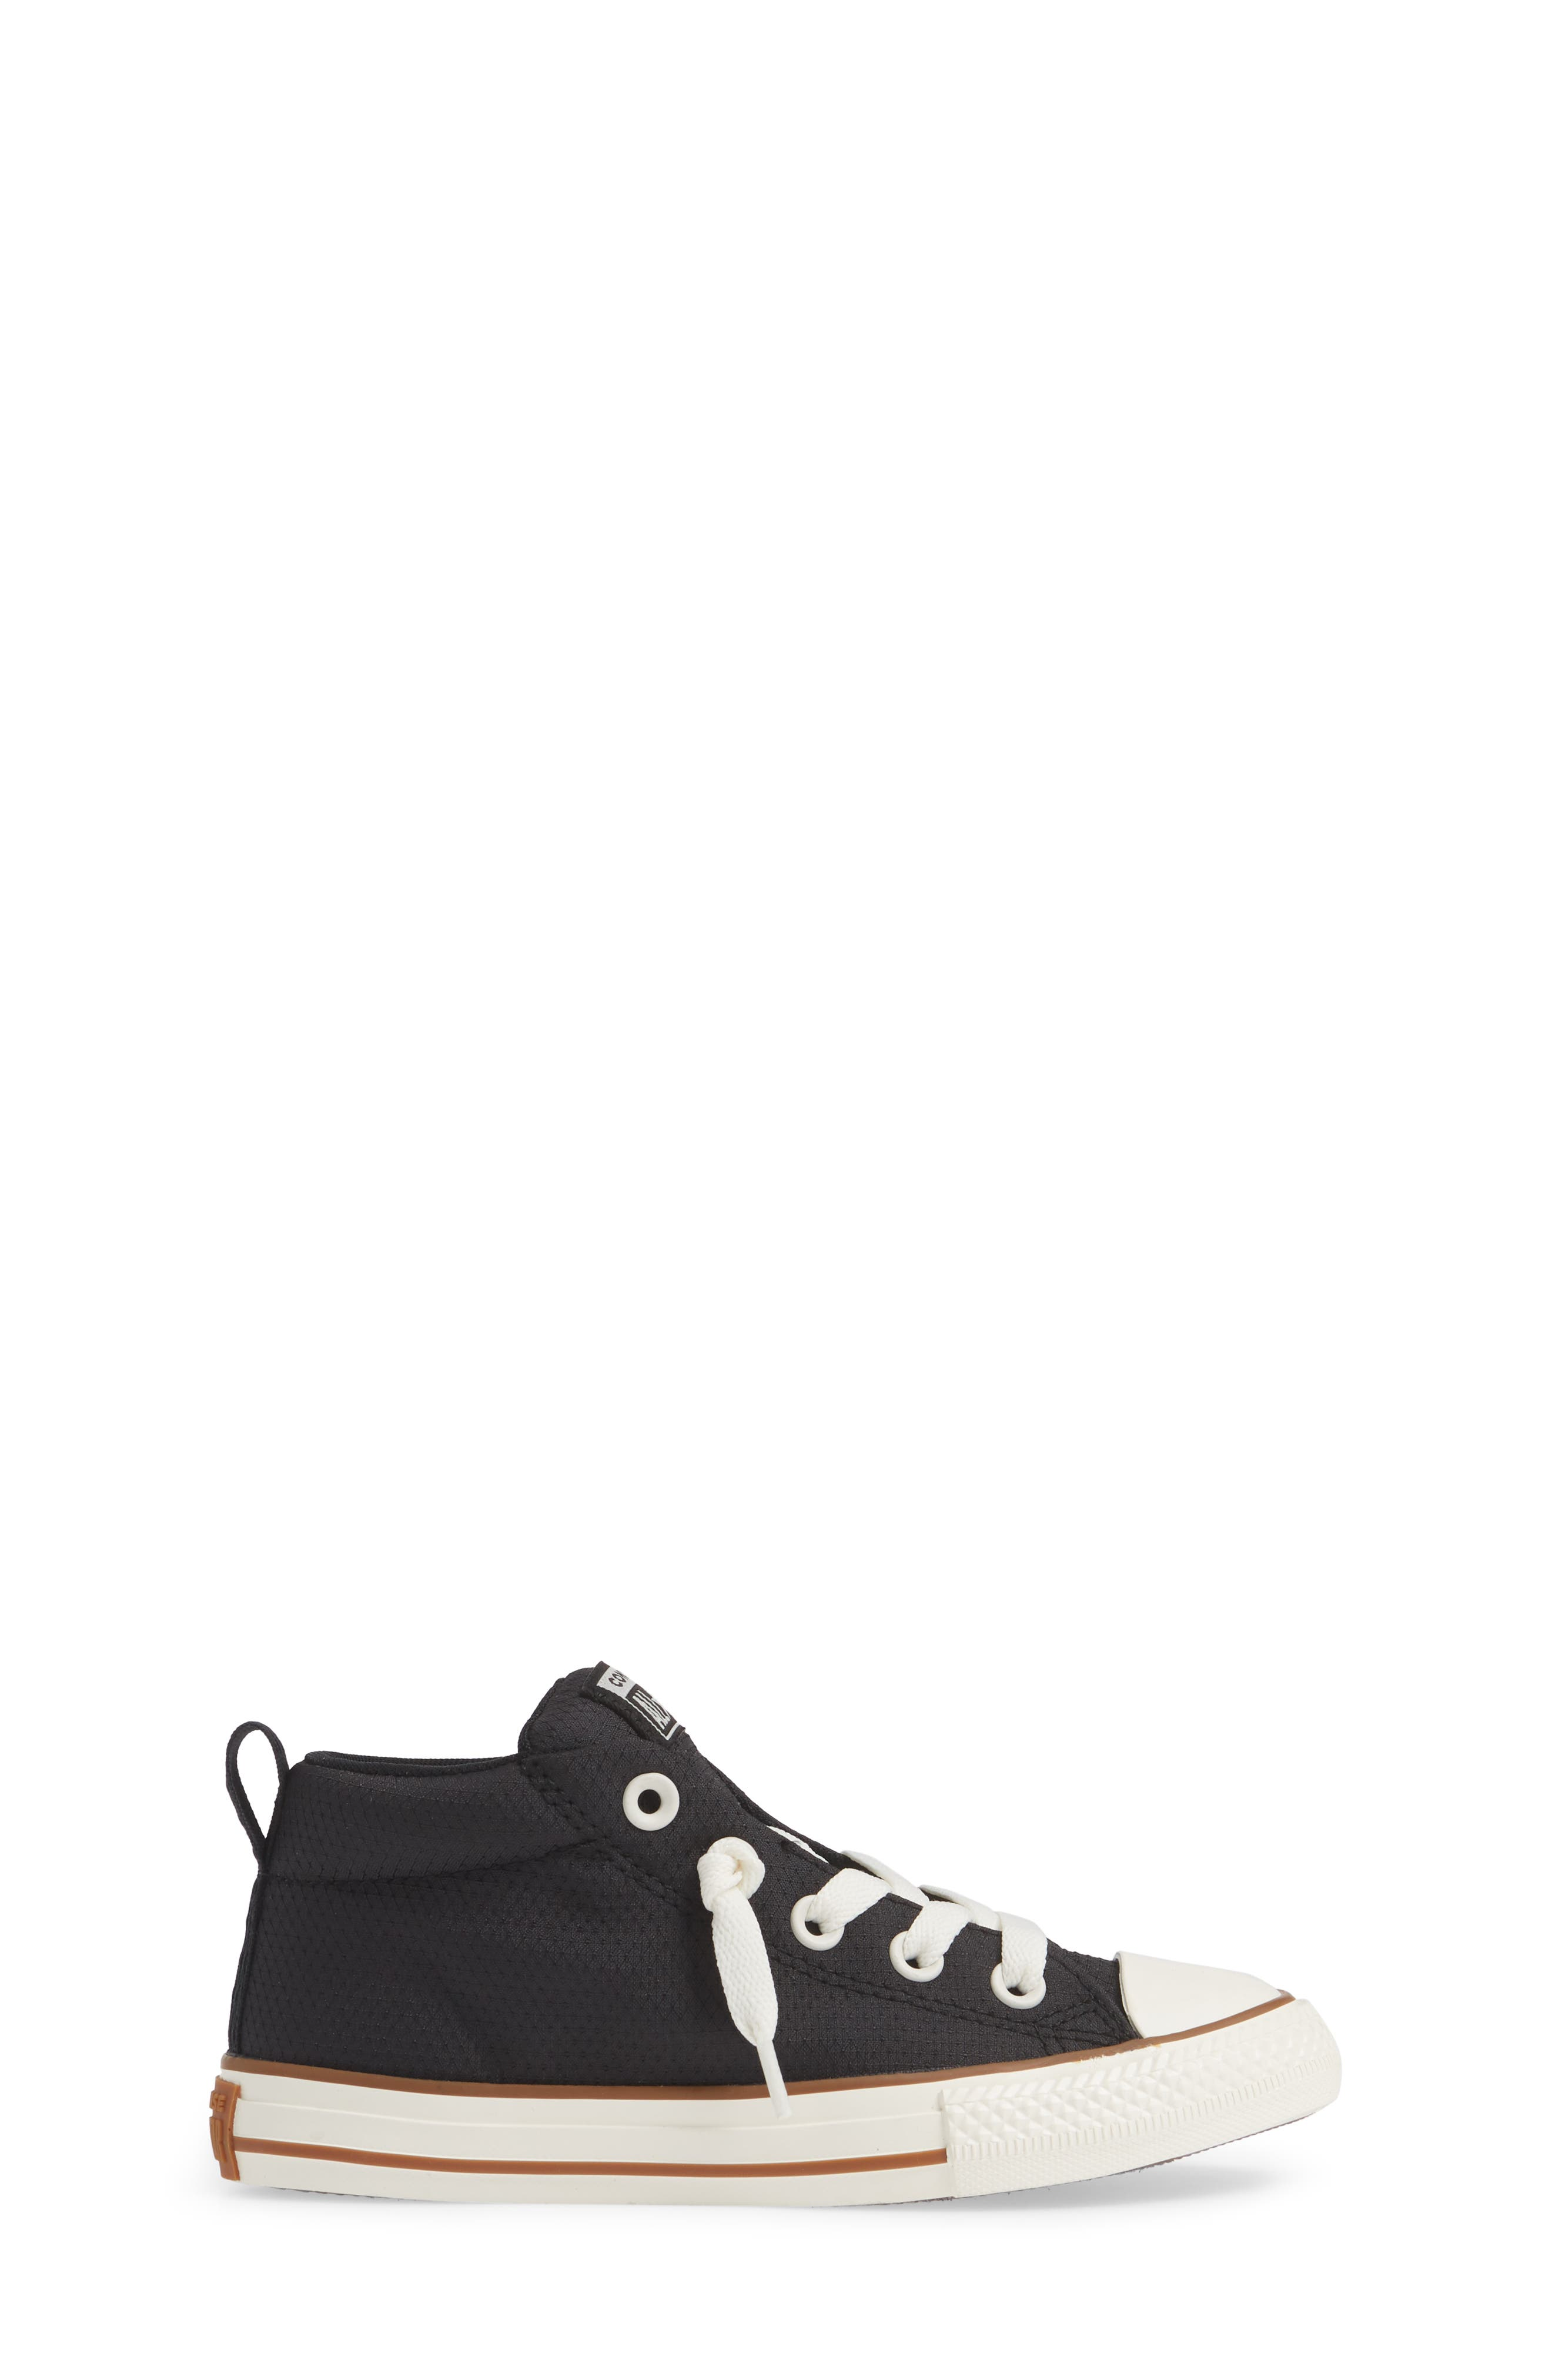 Chuck Taylor<sup>®</sup> All Star<sup>®</sup> Street Mid Top Sneaker,                             Alternate thumbnail 3, color,                             BLACK/ GUM/ EGRET